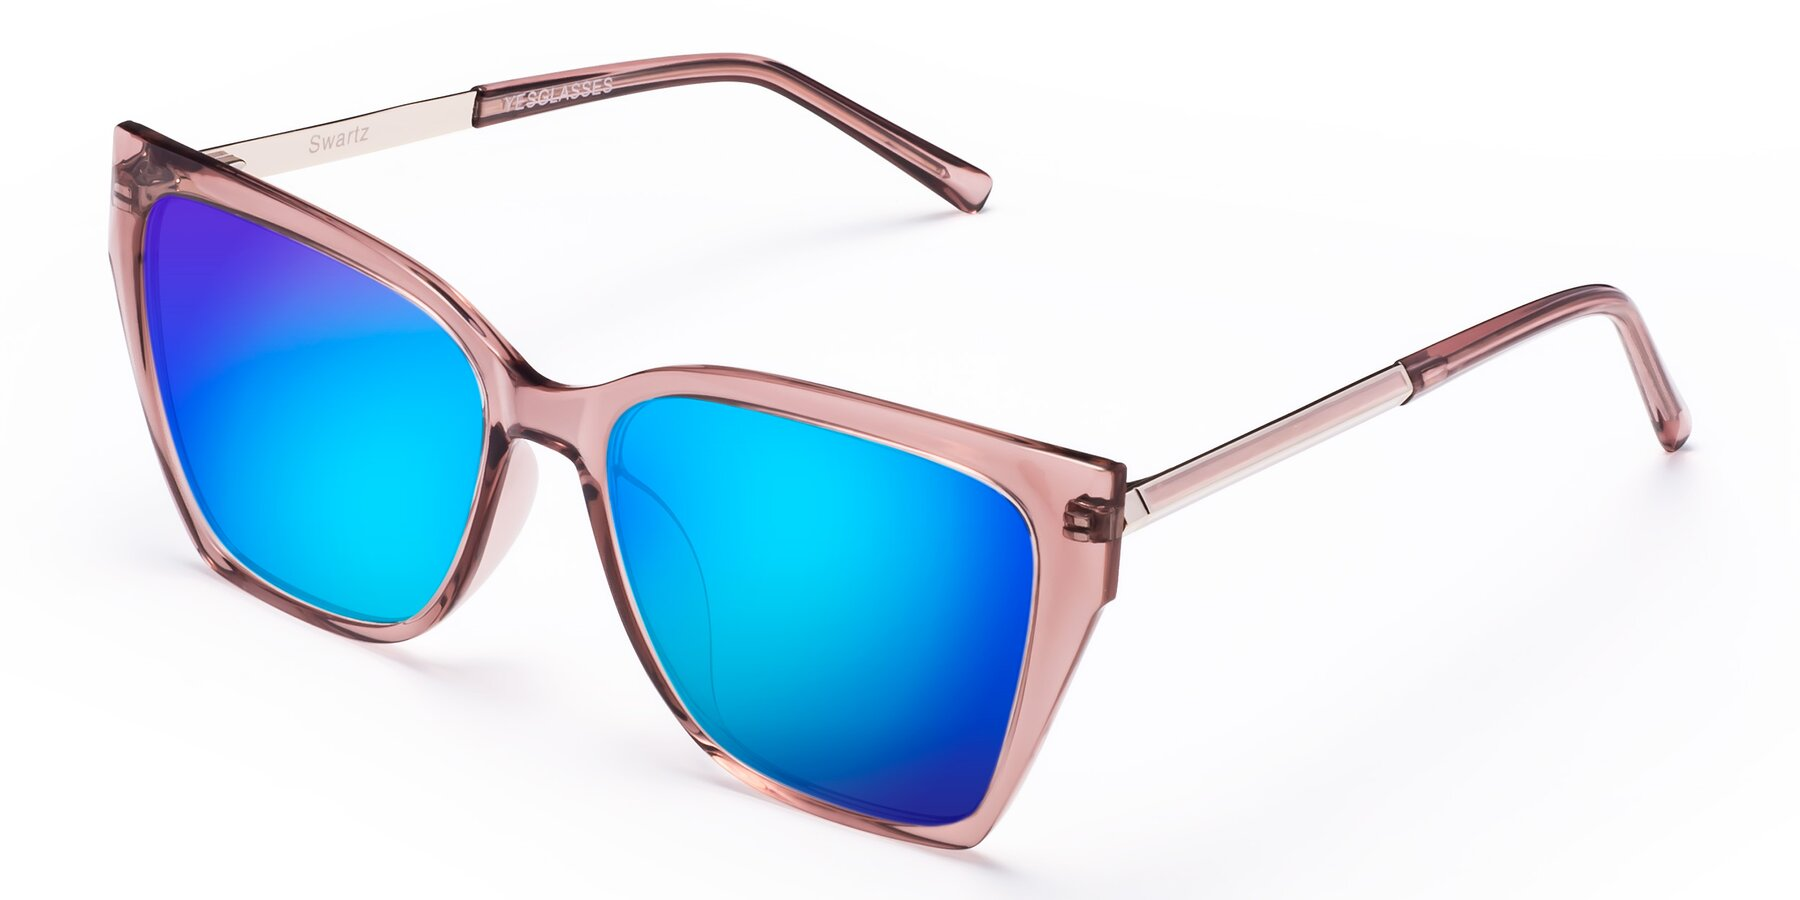 Angle of Swartz in Grape with Blue Mirrored Lenses